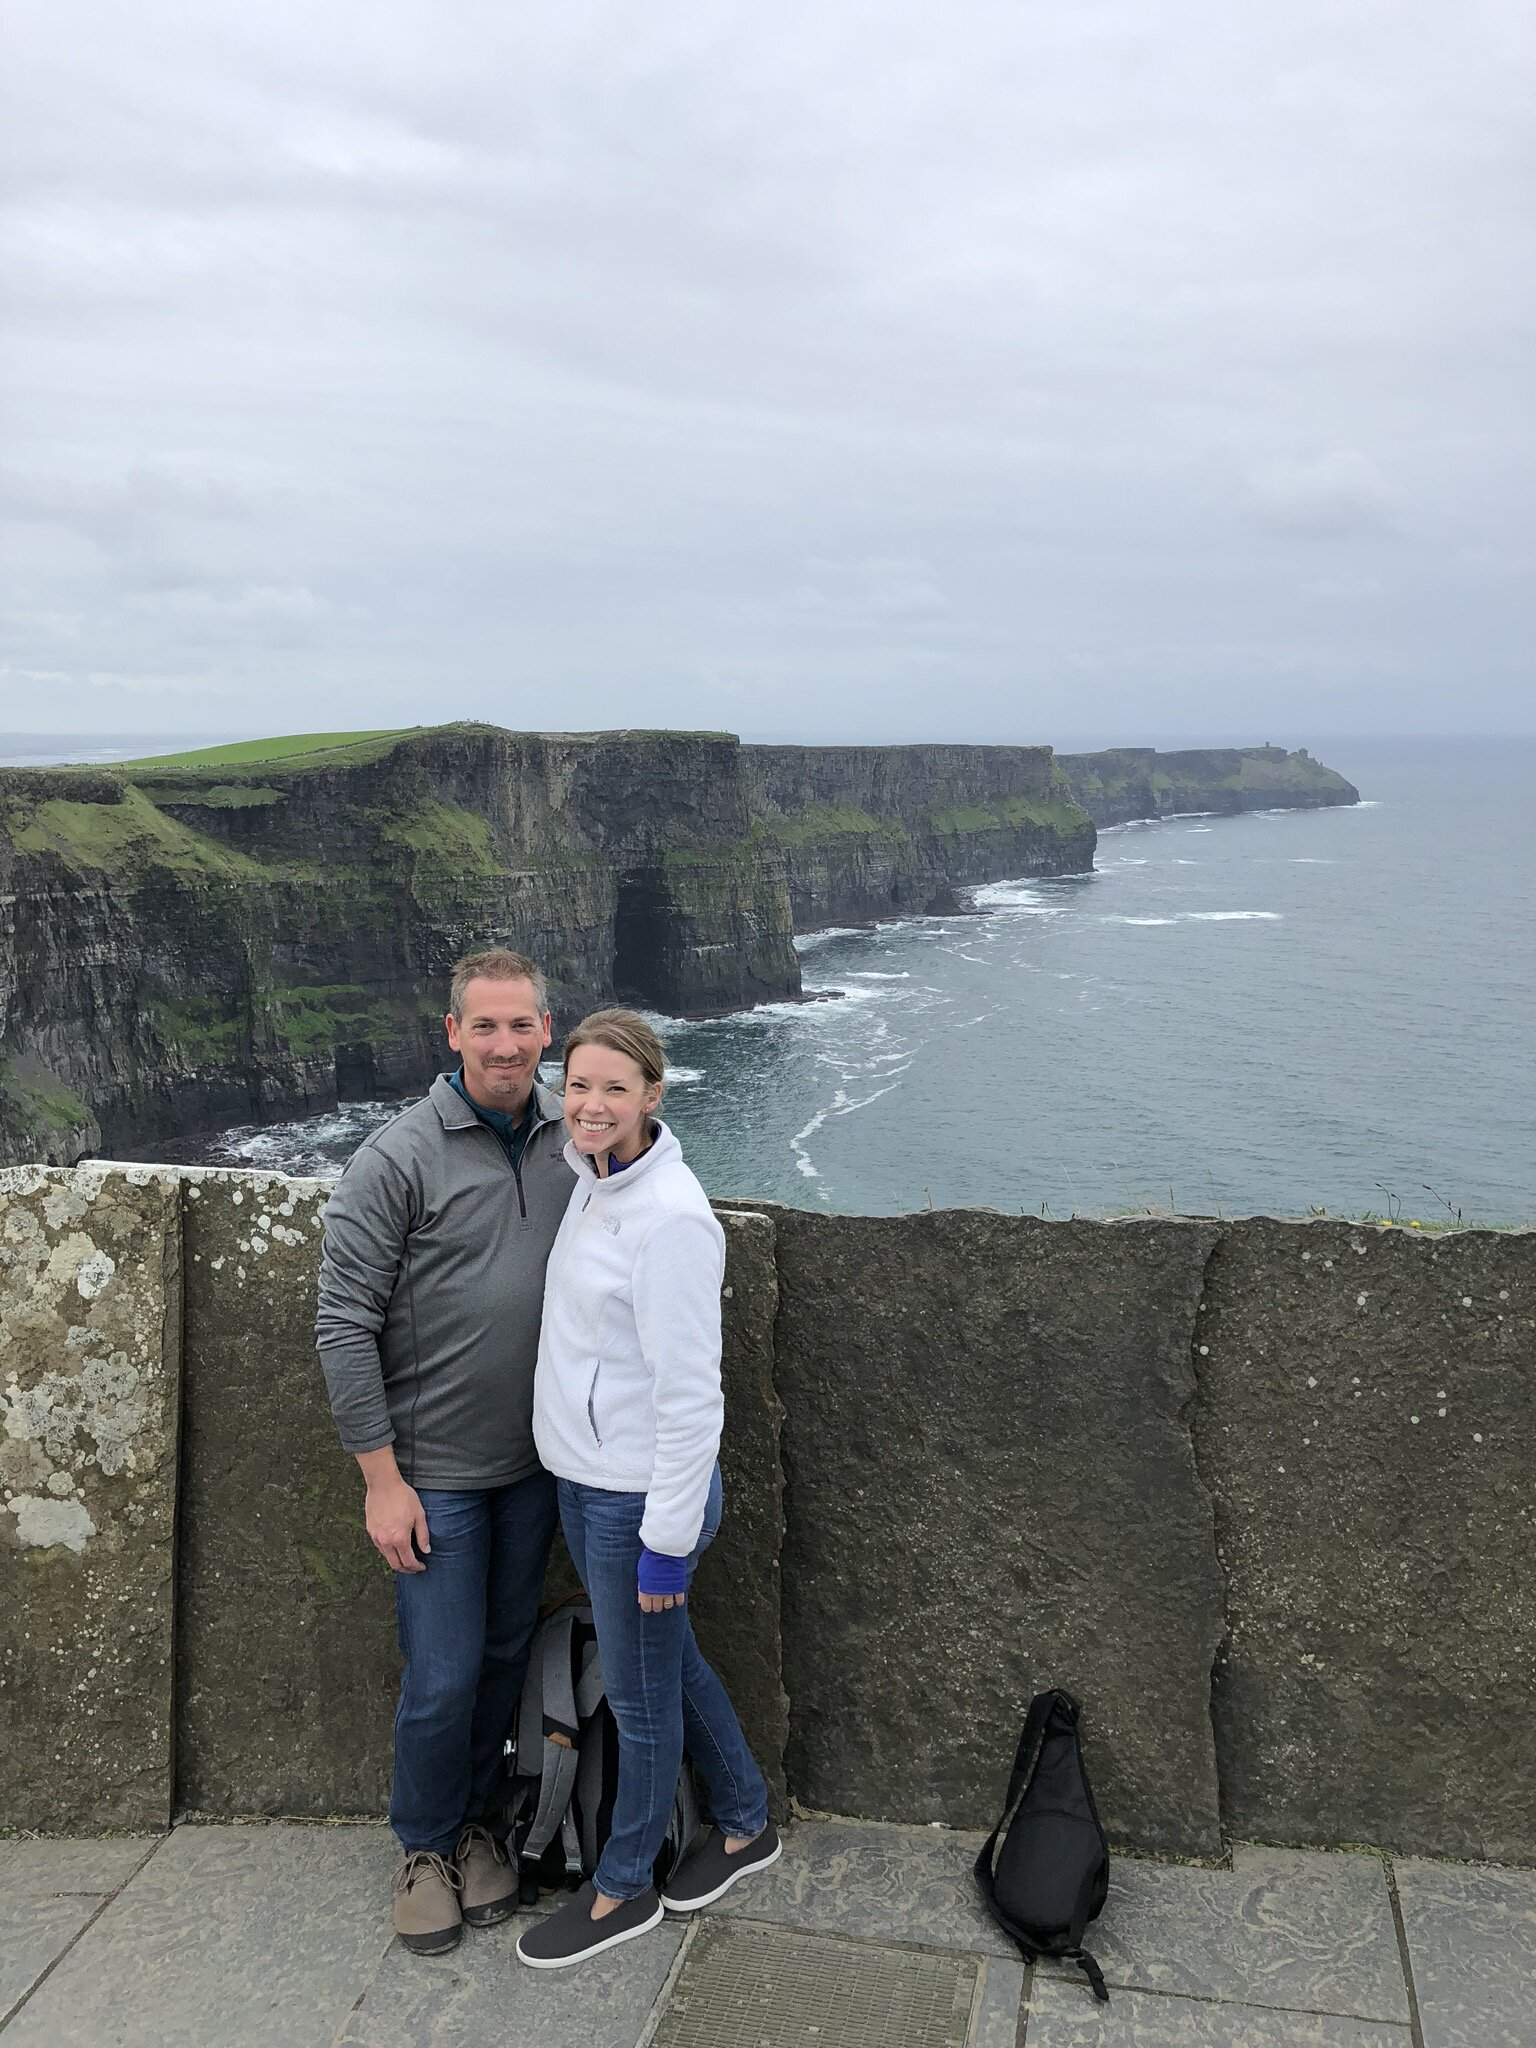 Jesse & Emily at The Cliffs of Moher